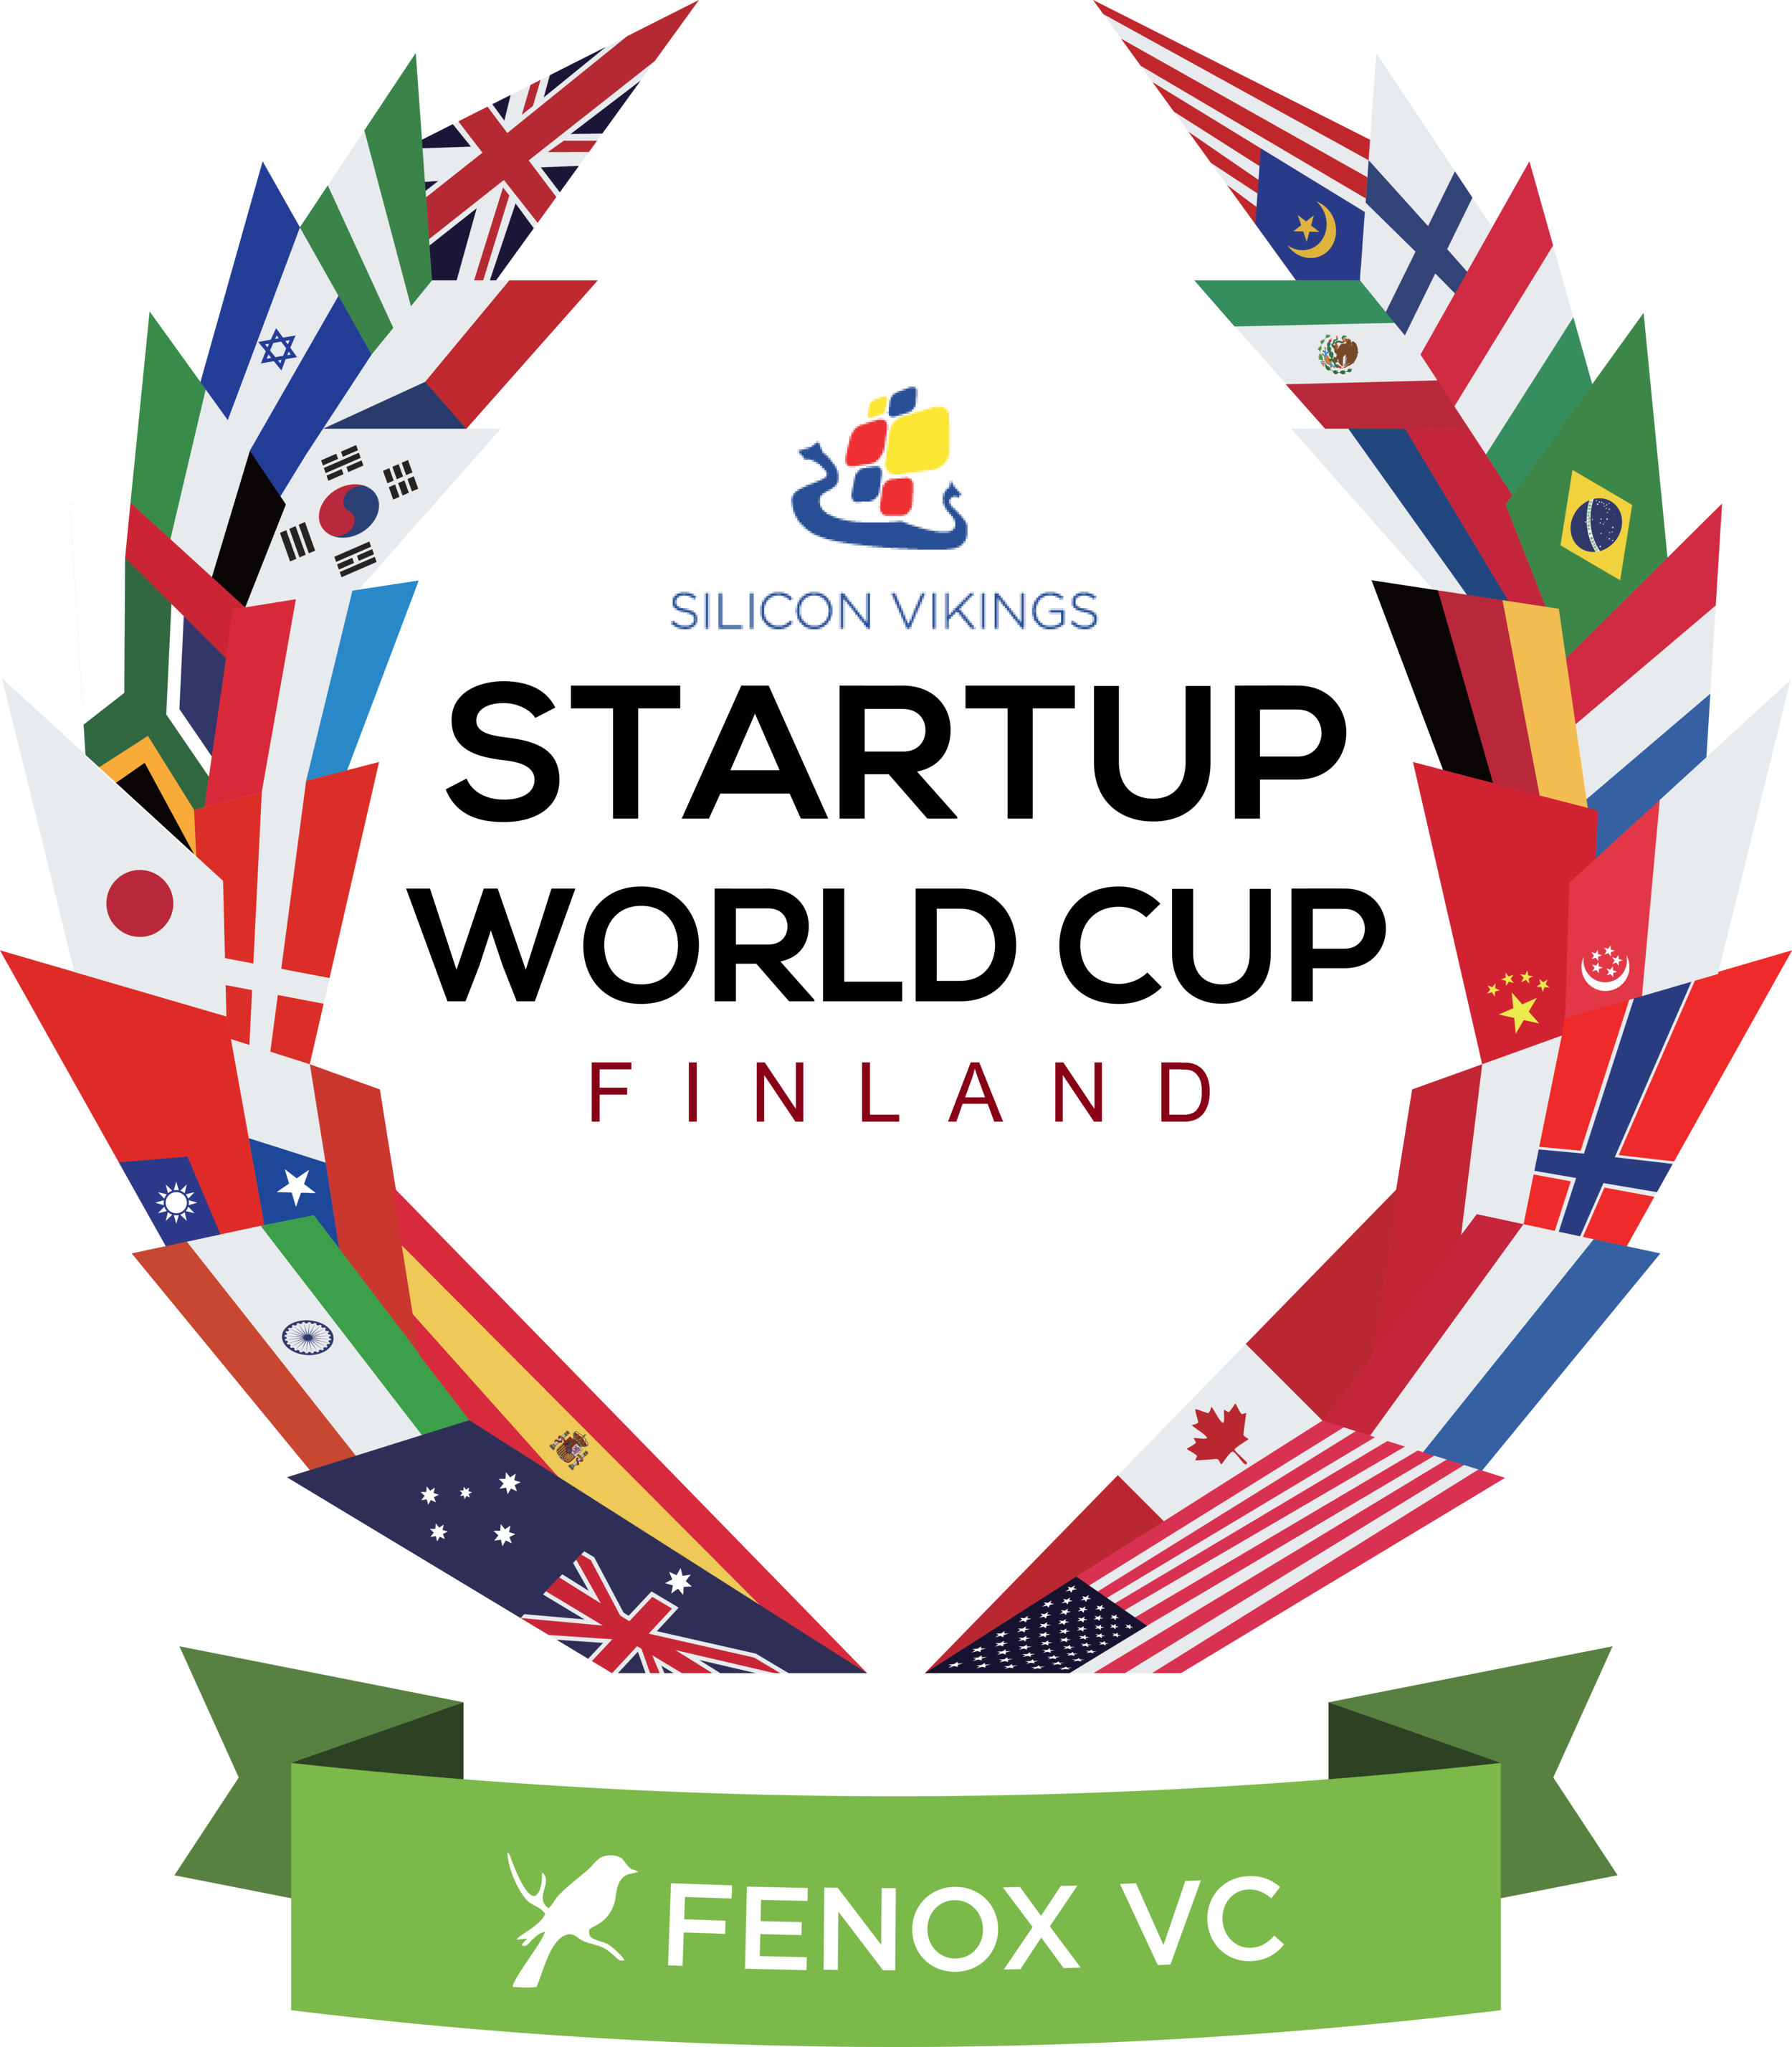 SILICON VIKINGS & STARTUP WORLD CUP FINLAND COUNTRY COMPETITION -